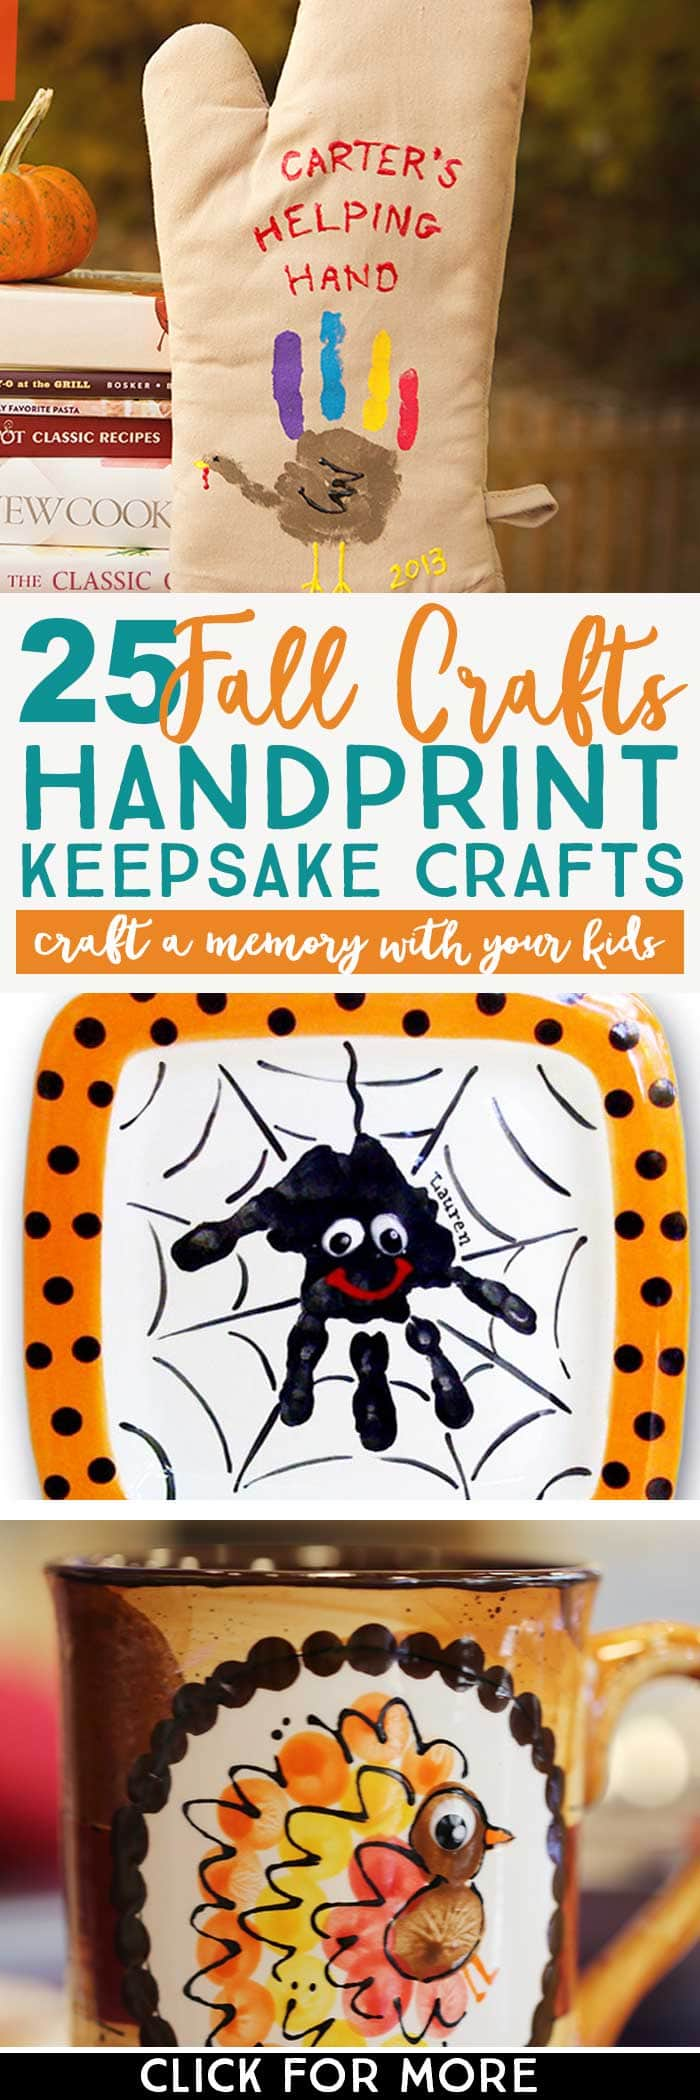 Make a fall memory with these 25 Fall Handprint Crafts. Click over to see all of them for Fall, Halloween, and Thanksgiving.